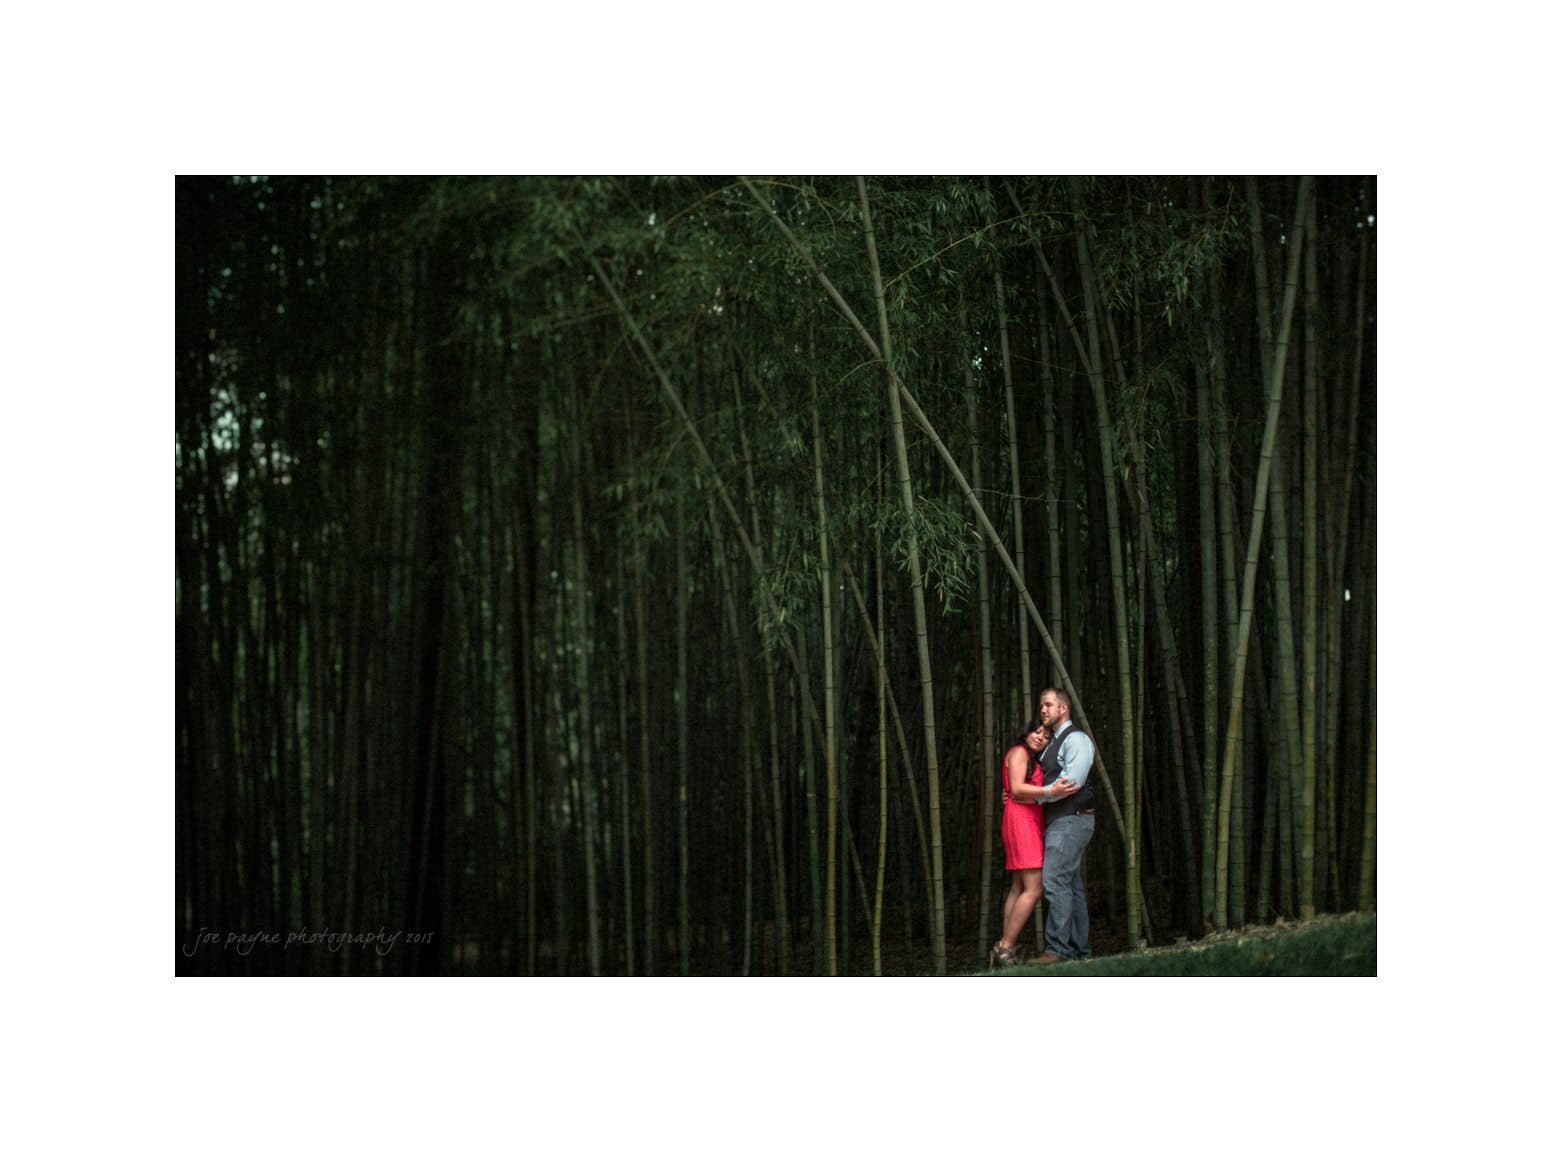 duke gardens engagement photography bamboo